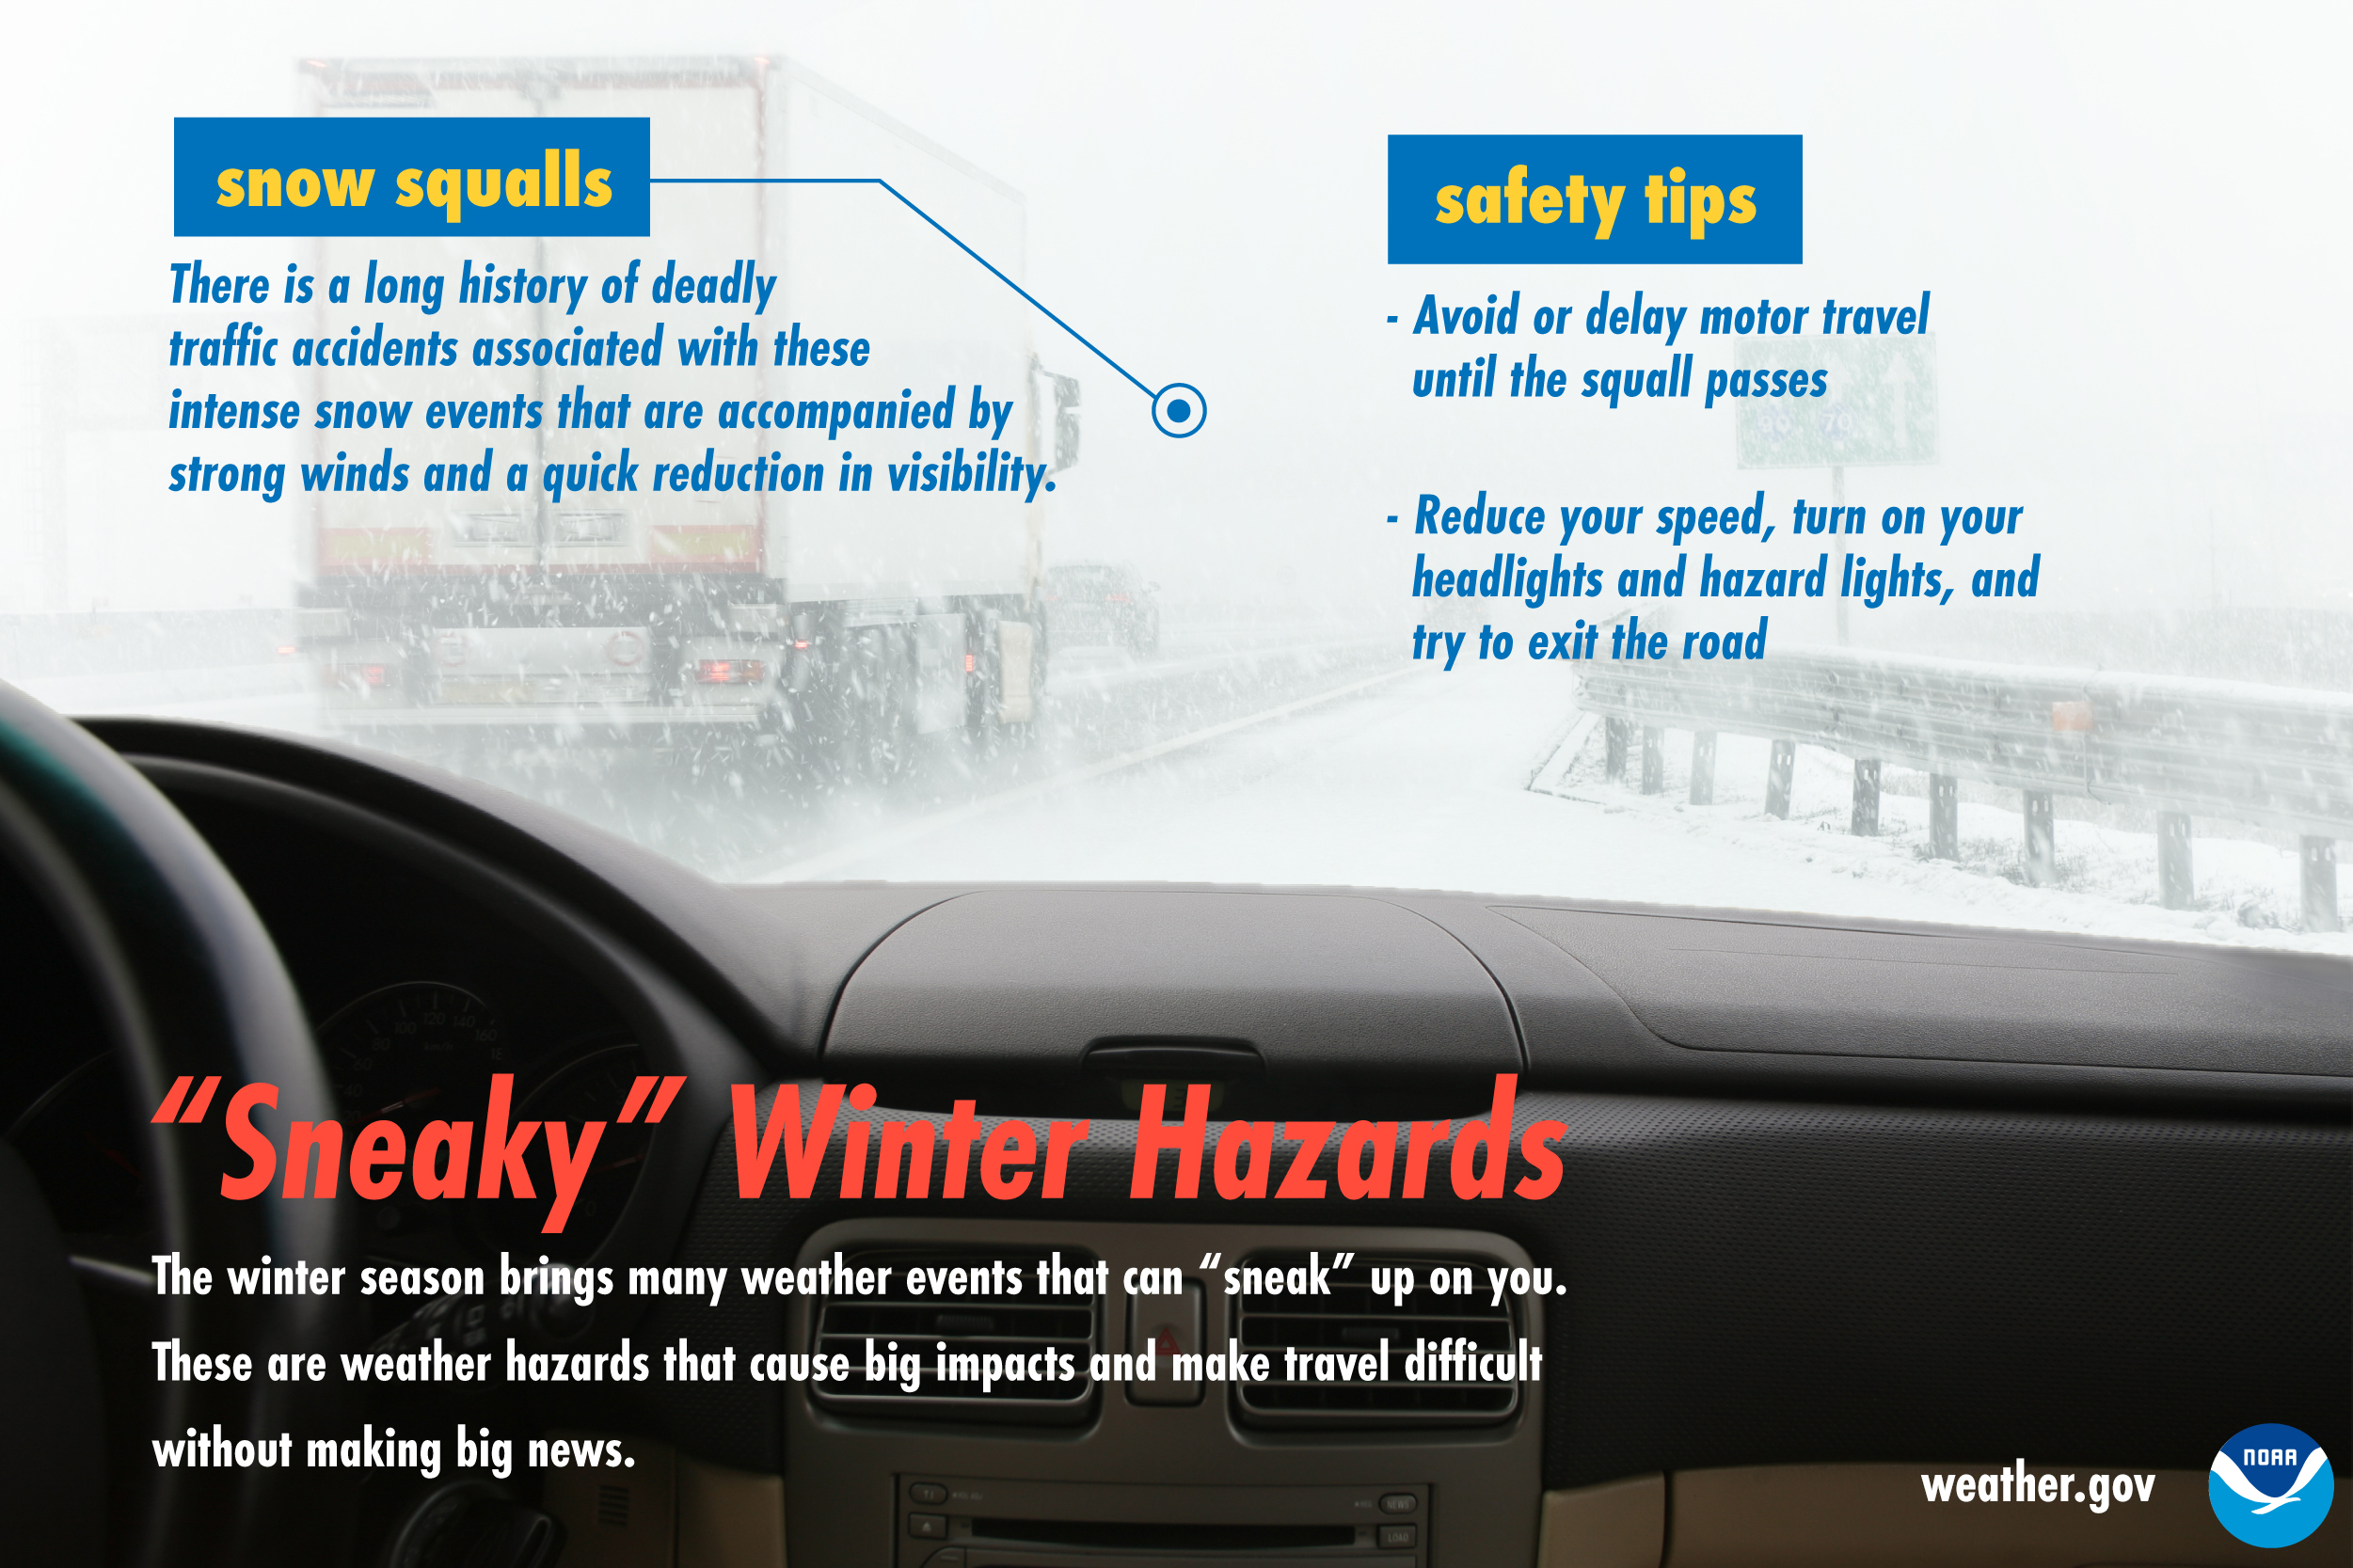 Sneaky Winter Hazards: Snow squalls